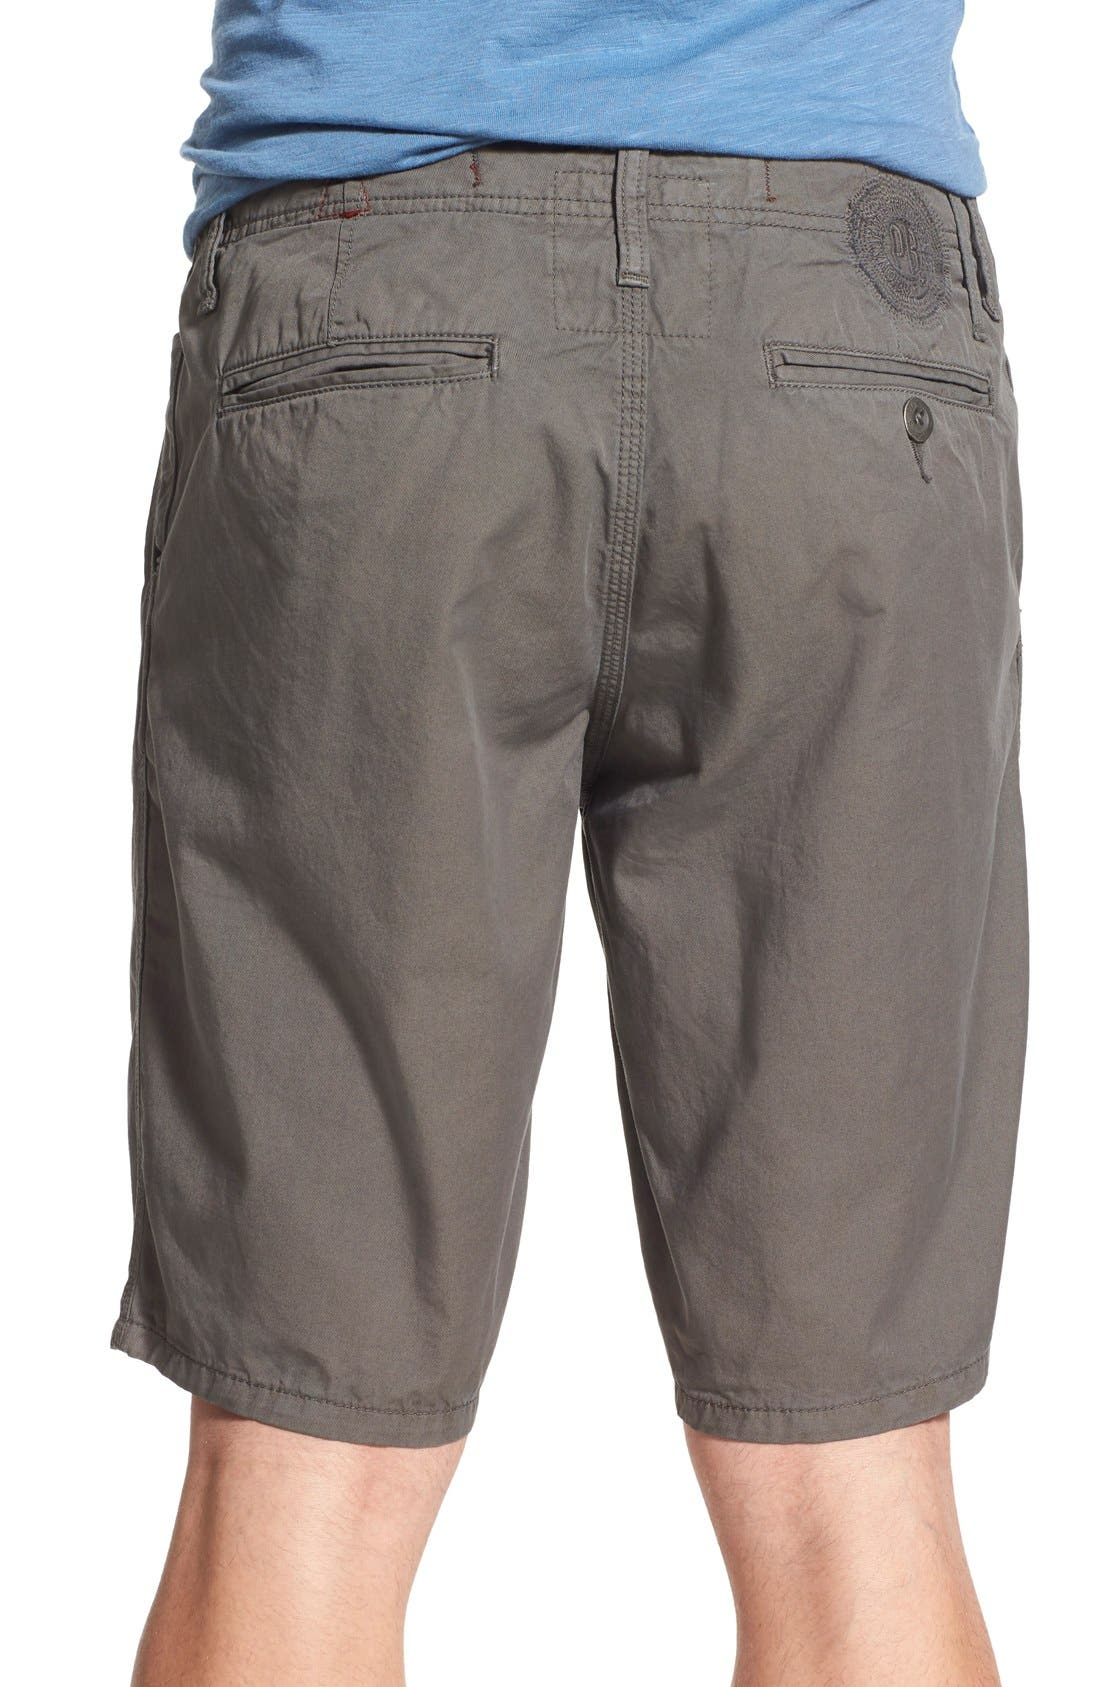 'Napa' Chino Shorts,                             Alternate thumbnail 21, color,